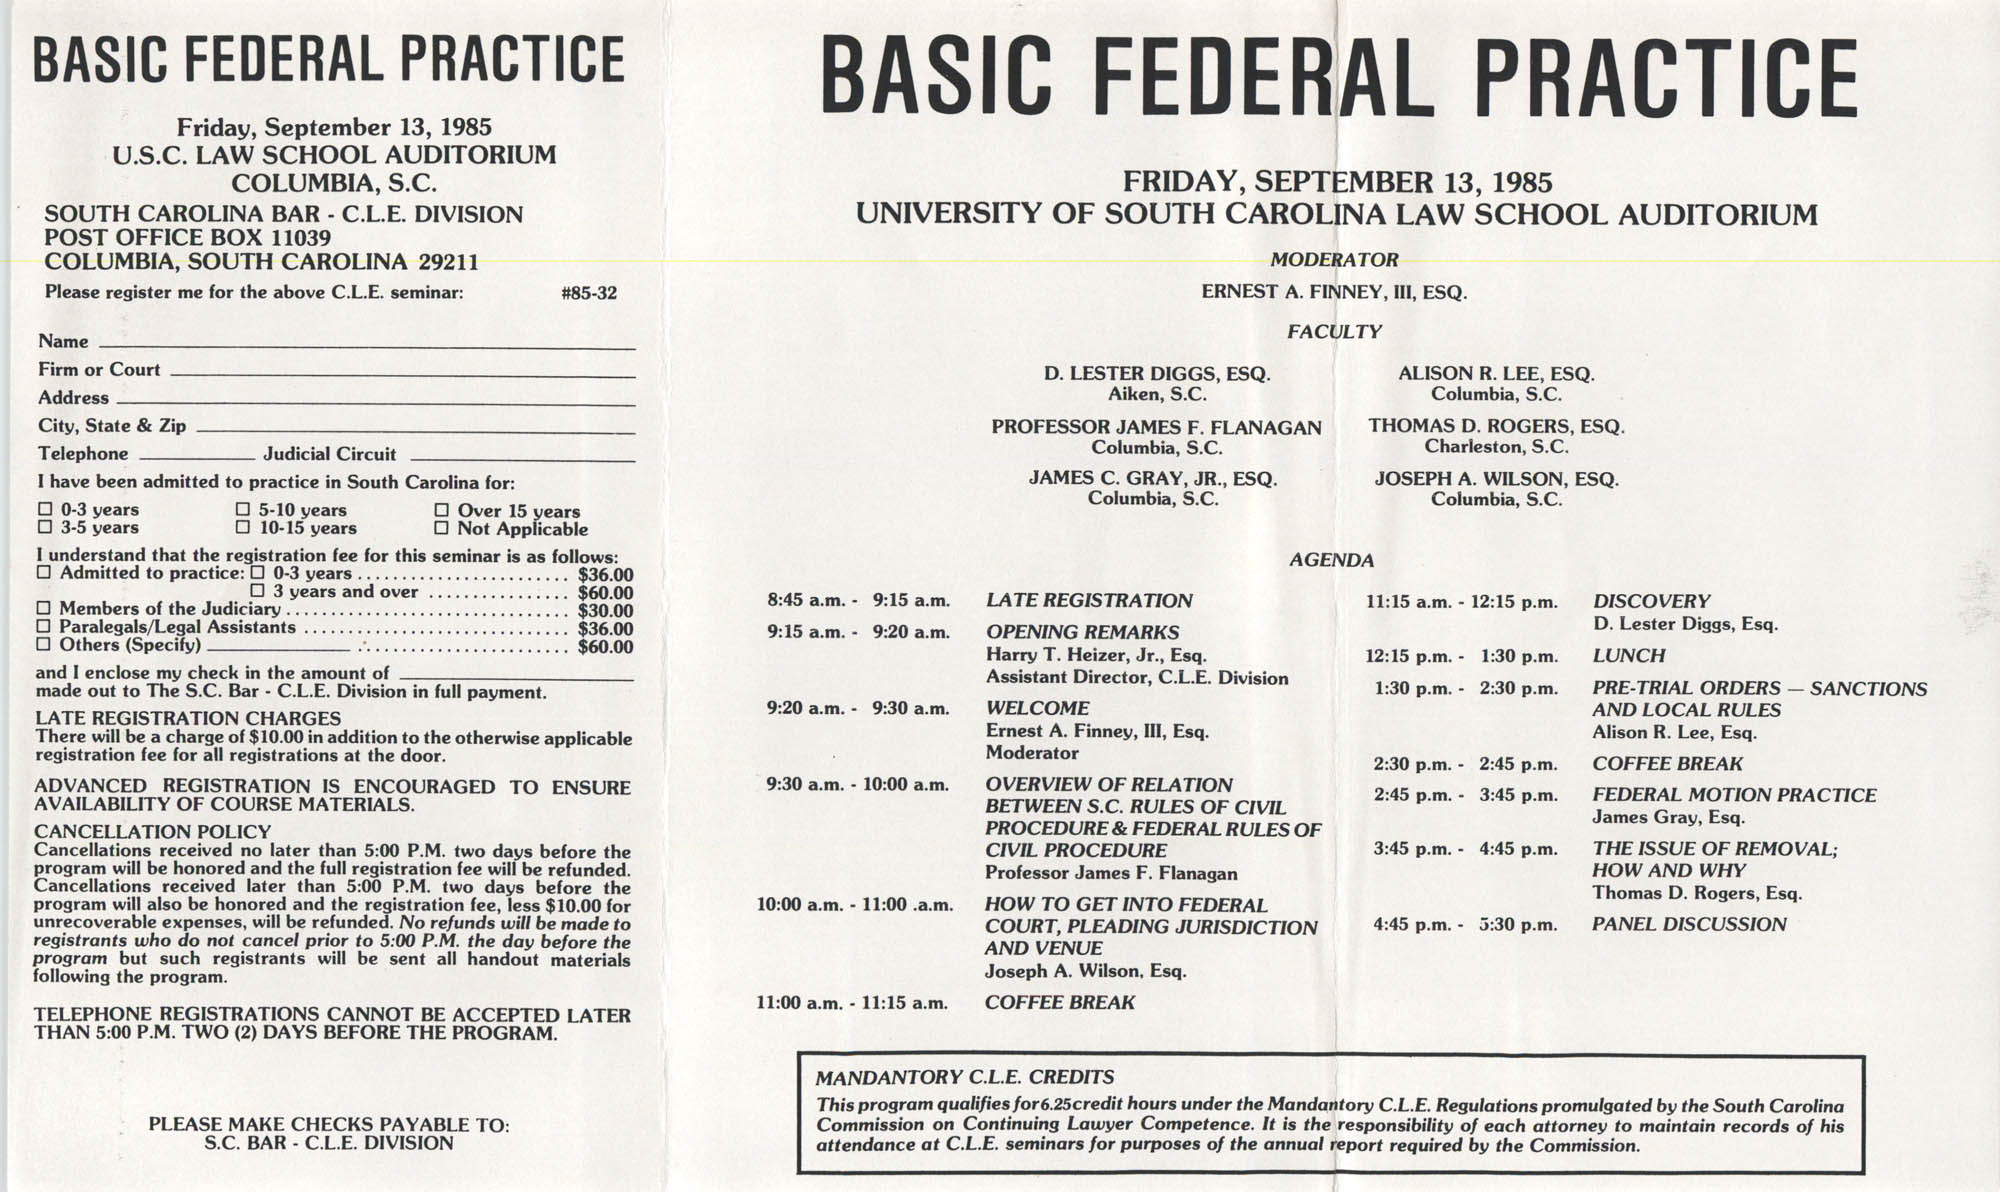 Basic Federal Practice, Pamphlet, September 13, 1985